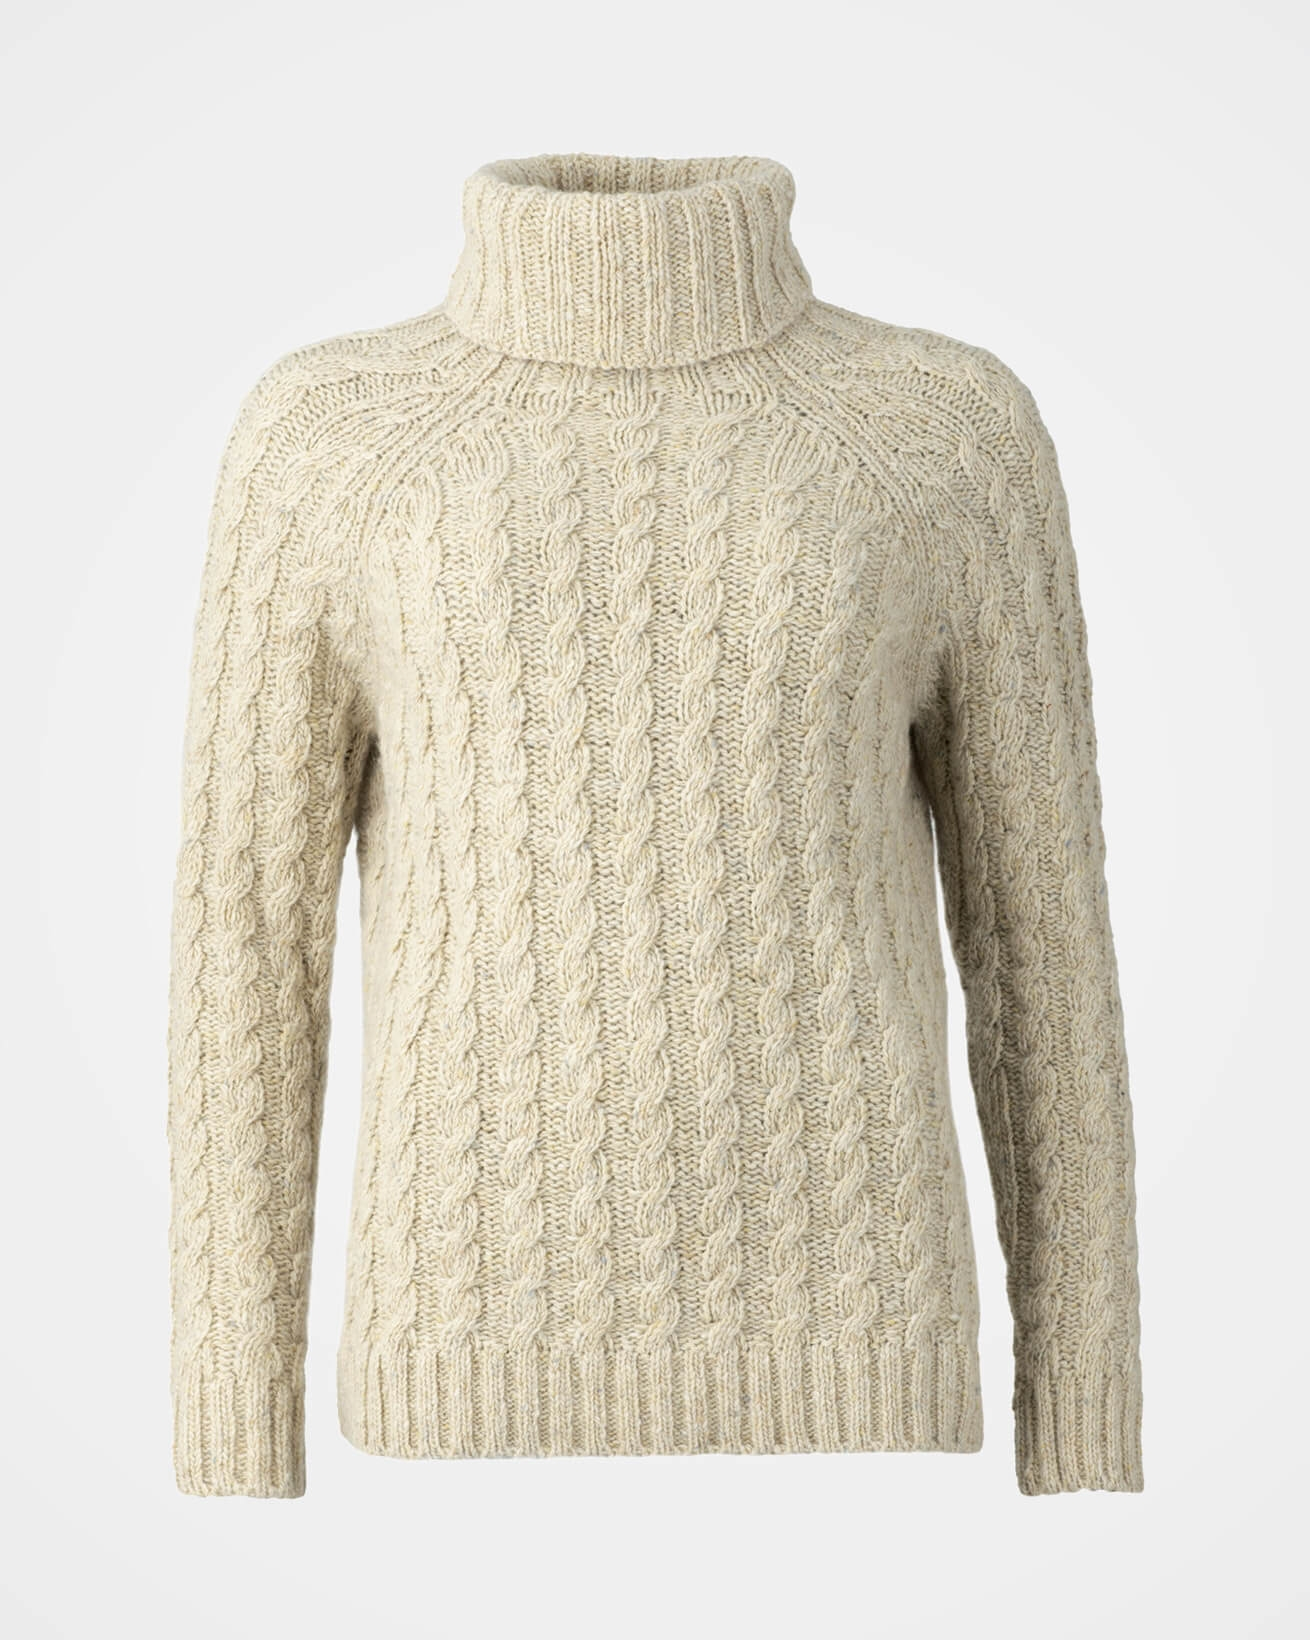 7595_donegal-cable-roll-neck_oatmeal_front_web.jpg